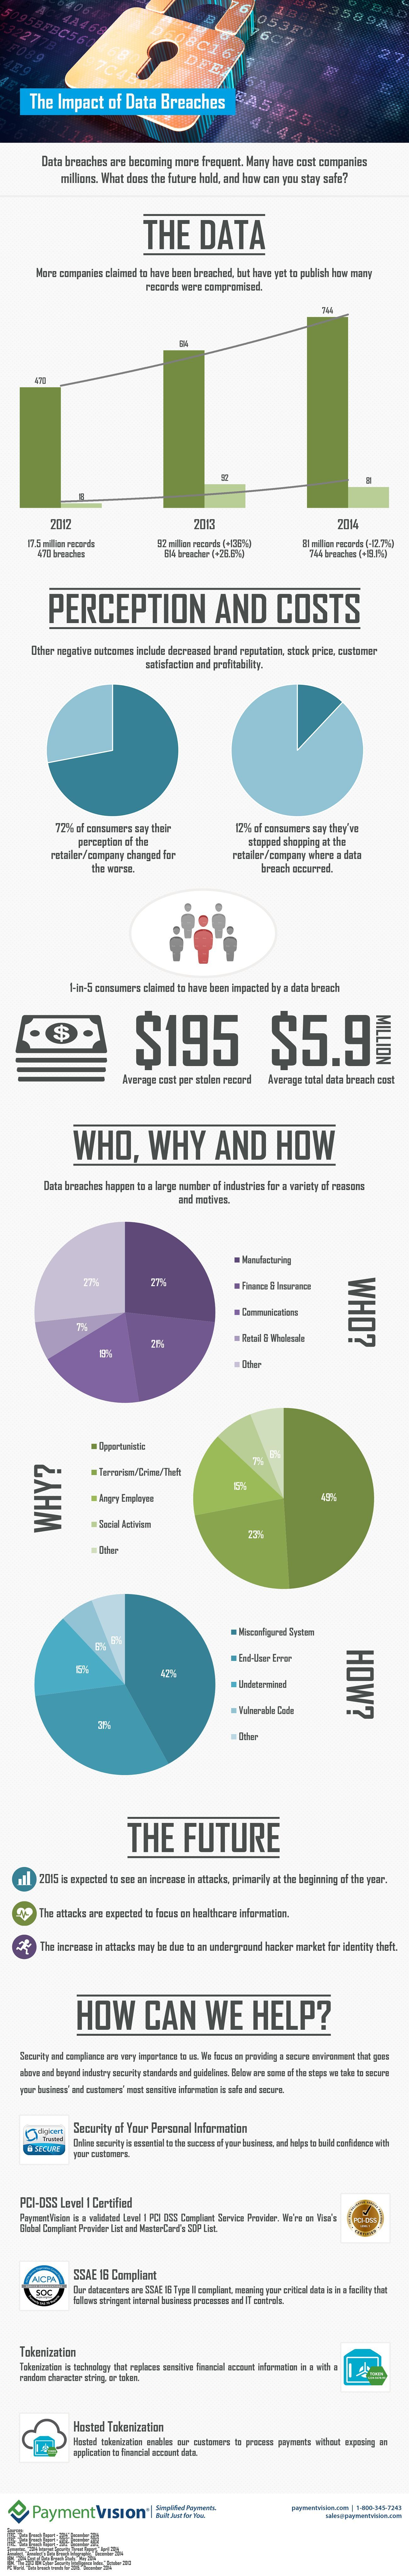 The Impact of Data Breaches #infographic